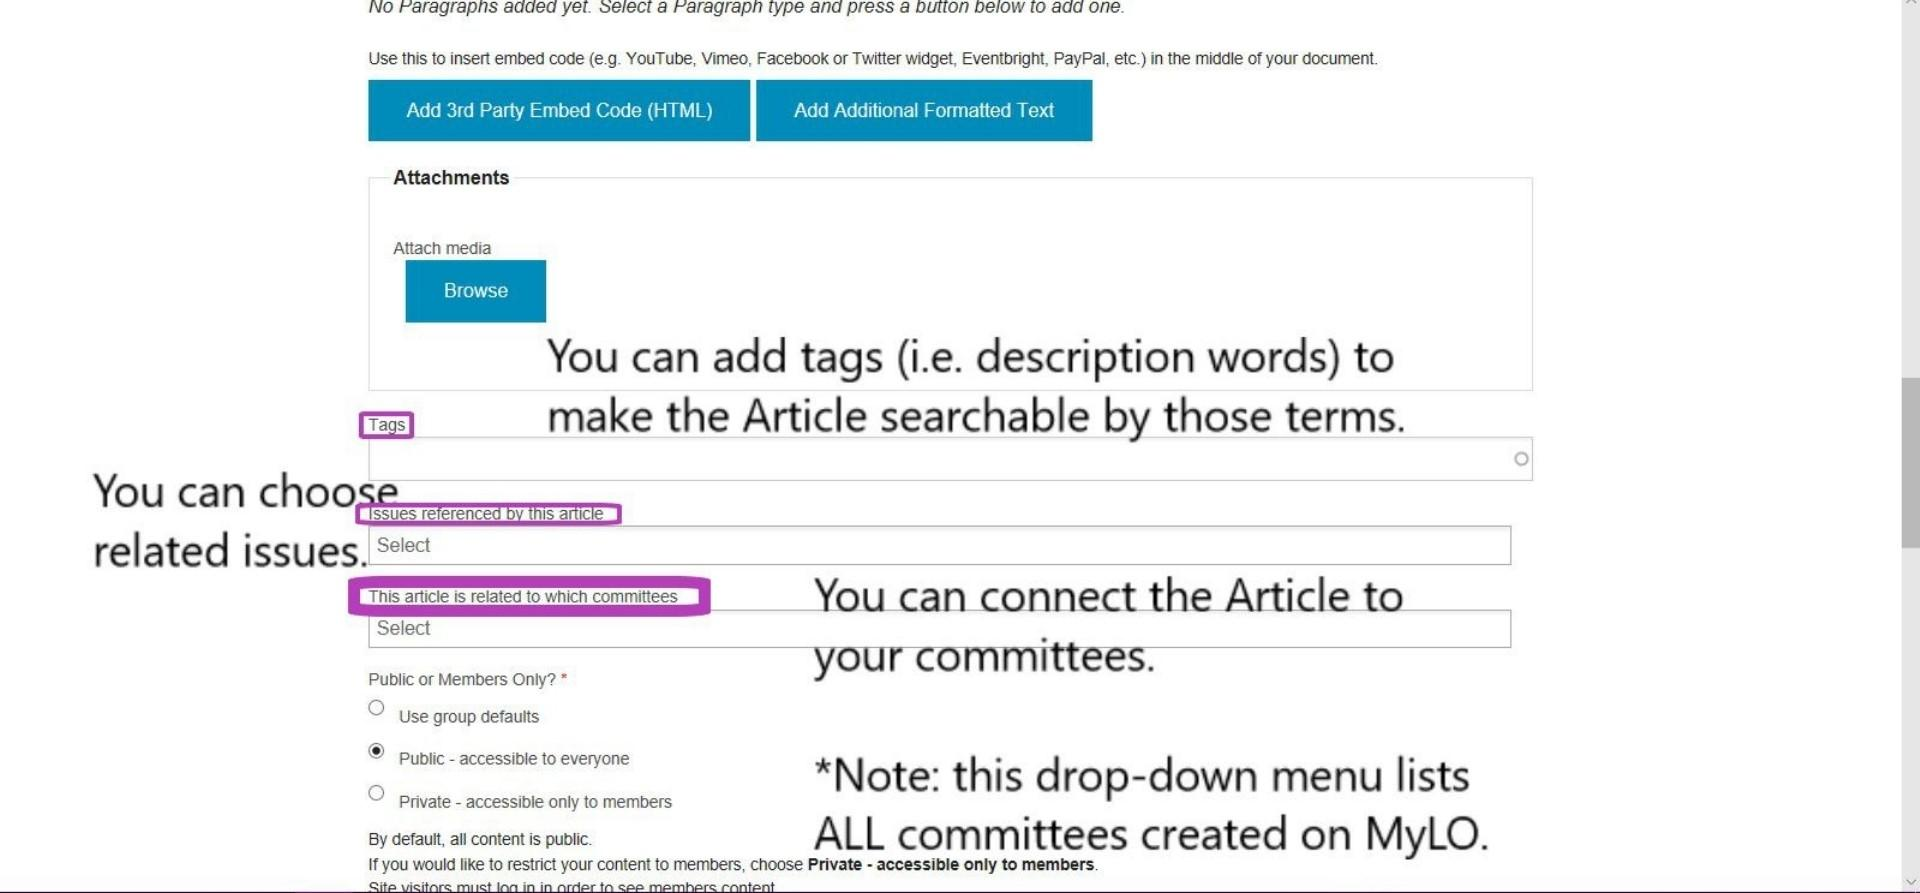 Create Article - add embed code, attachments, tags, related issues or committees